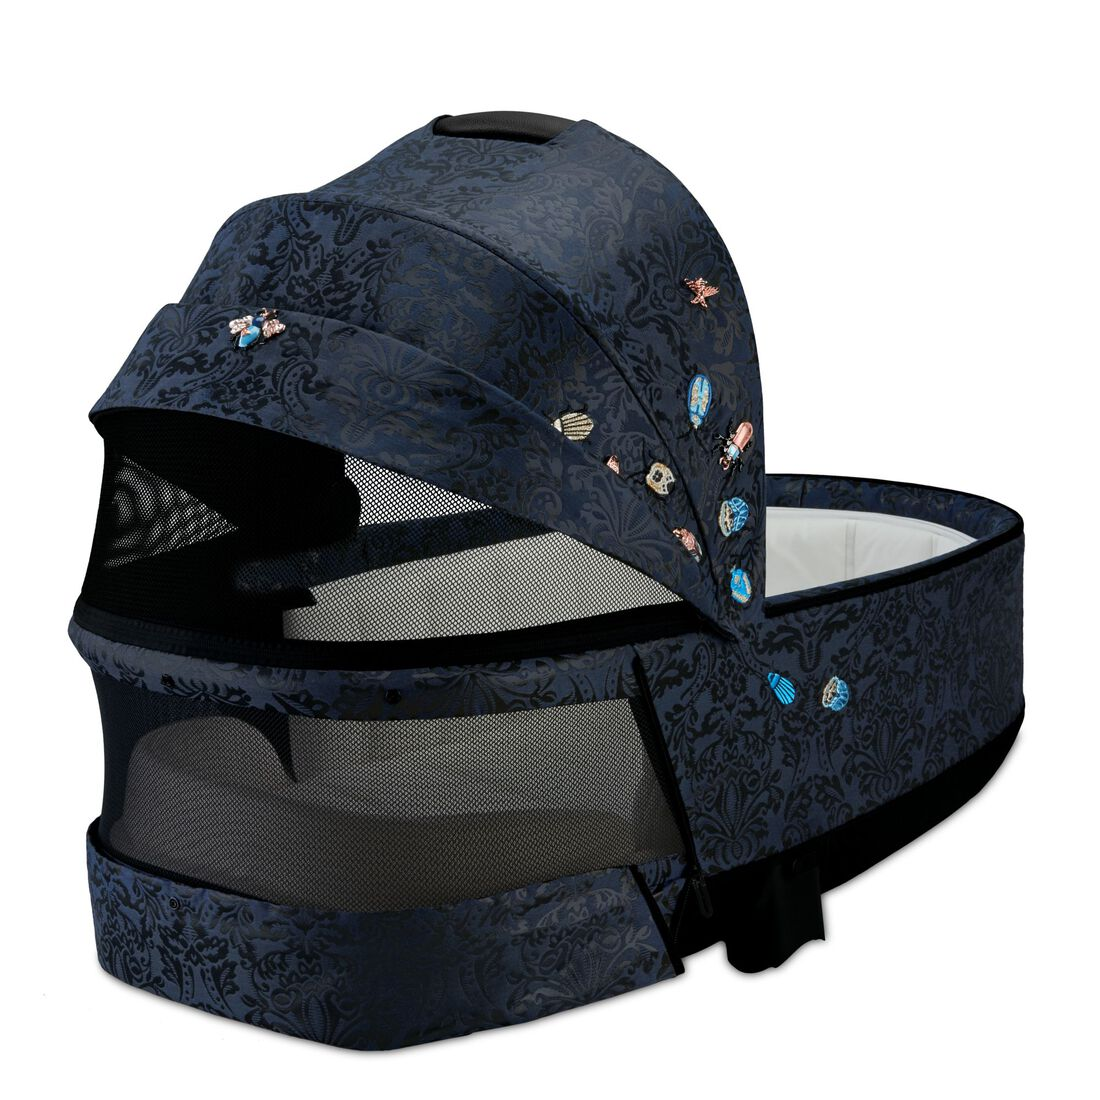 CYBEX Priam Lux Carry Cot - Jewels of Nature in Jewels of Nature large image number 3